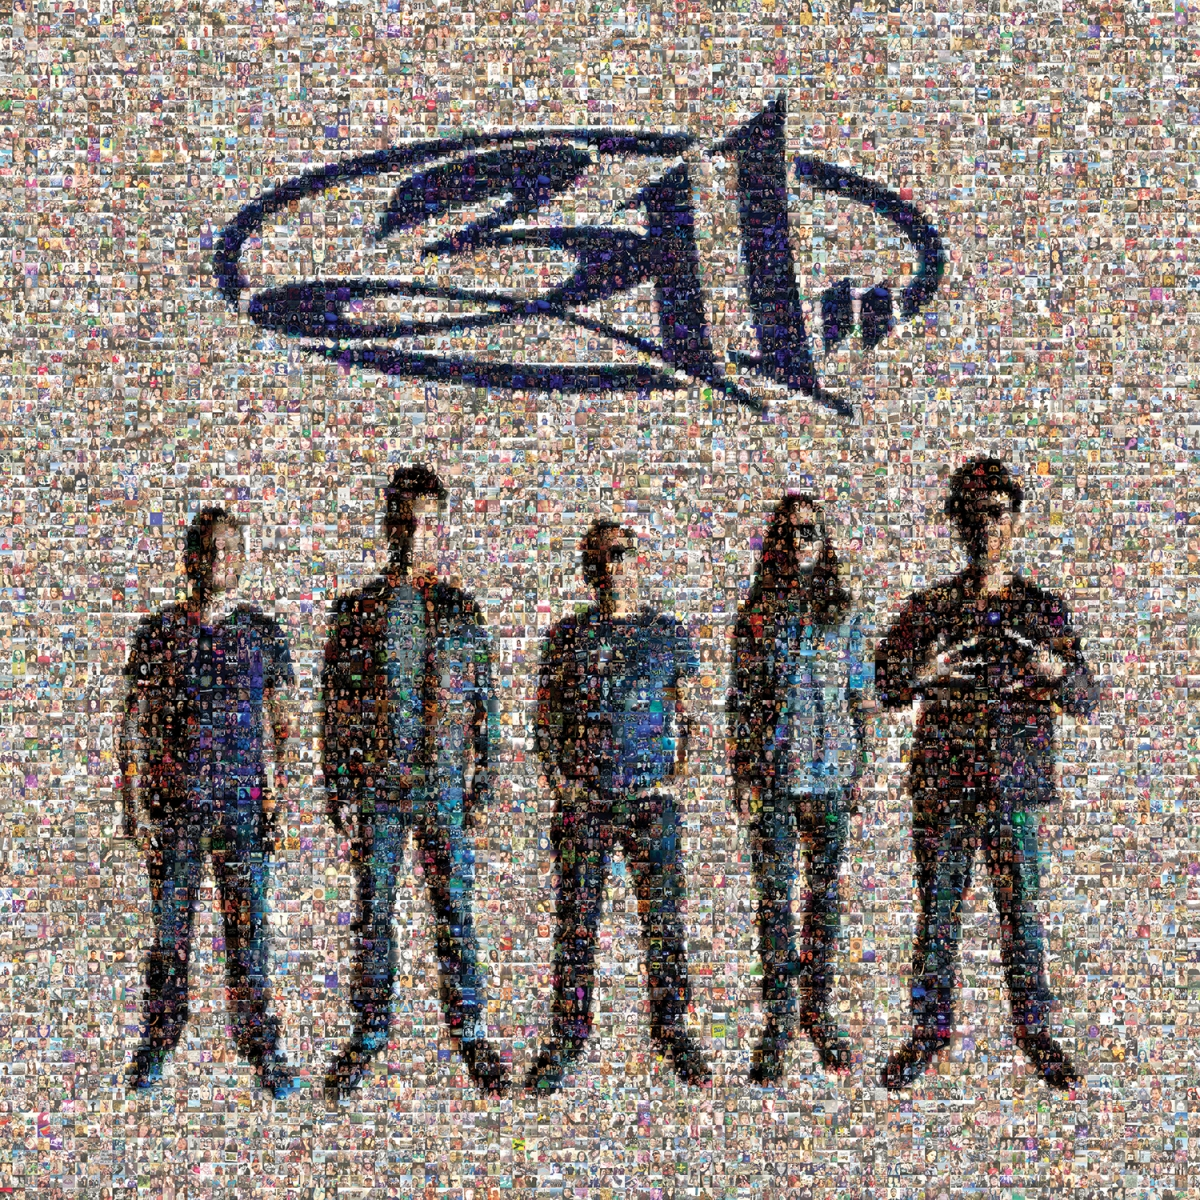 June 2017, Best Rock Album of the Month: Mosaic by311